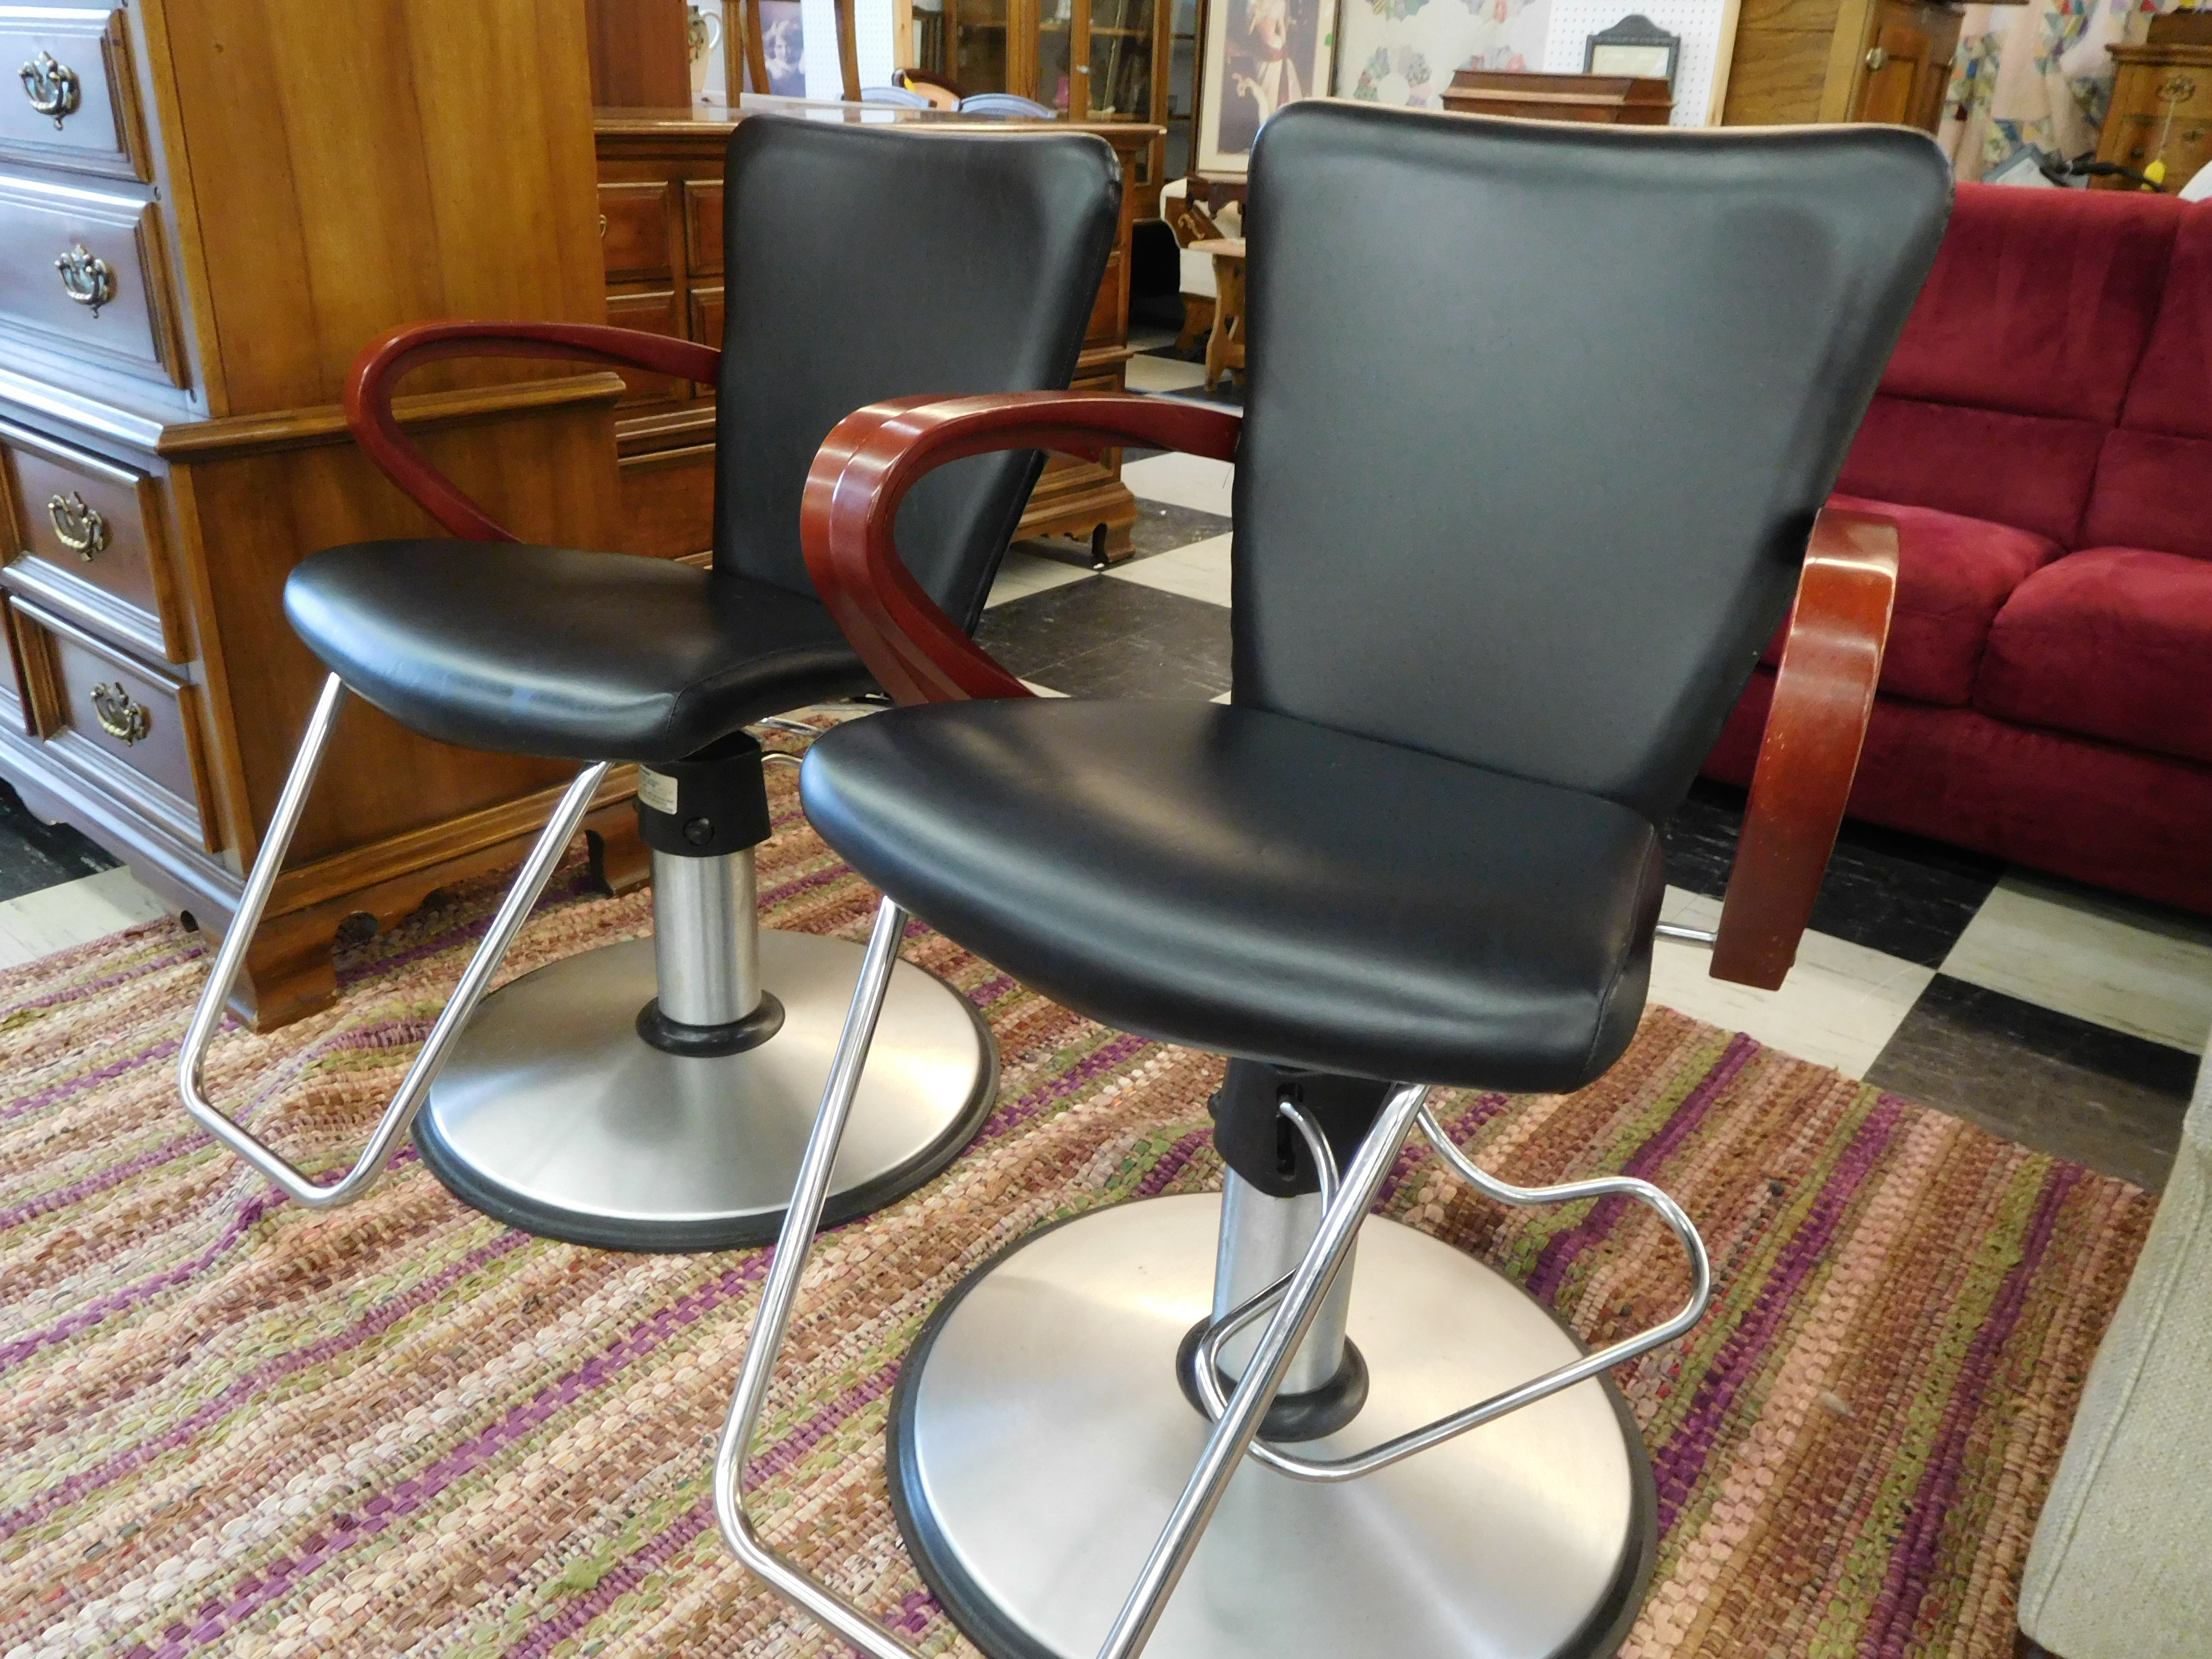 Pair of Belvedere Hydraulic Salon Styling Chairs  - $450 Each, or Both for $880